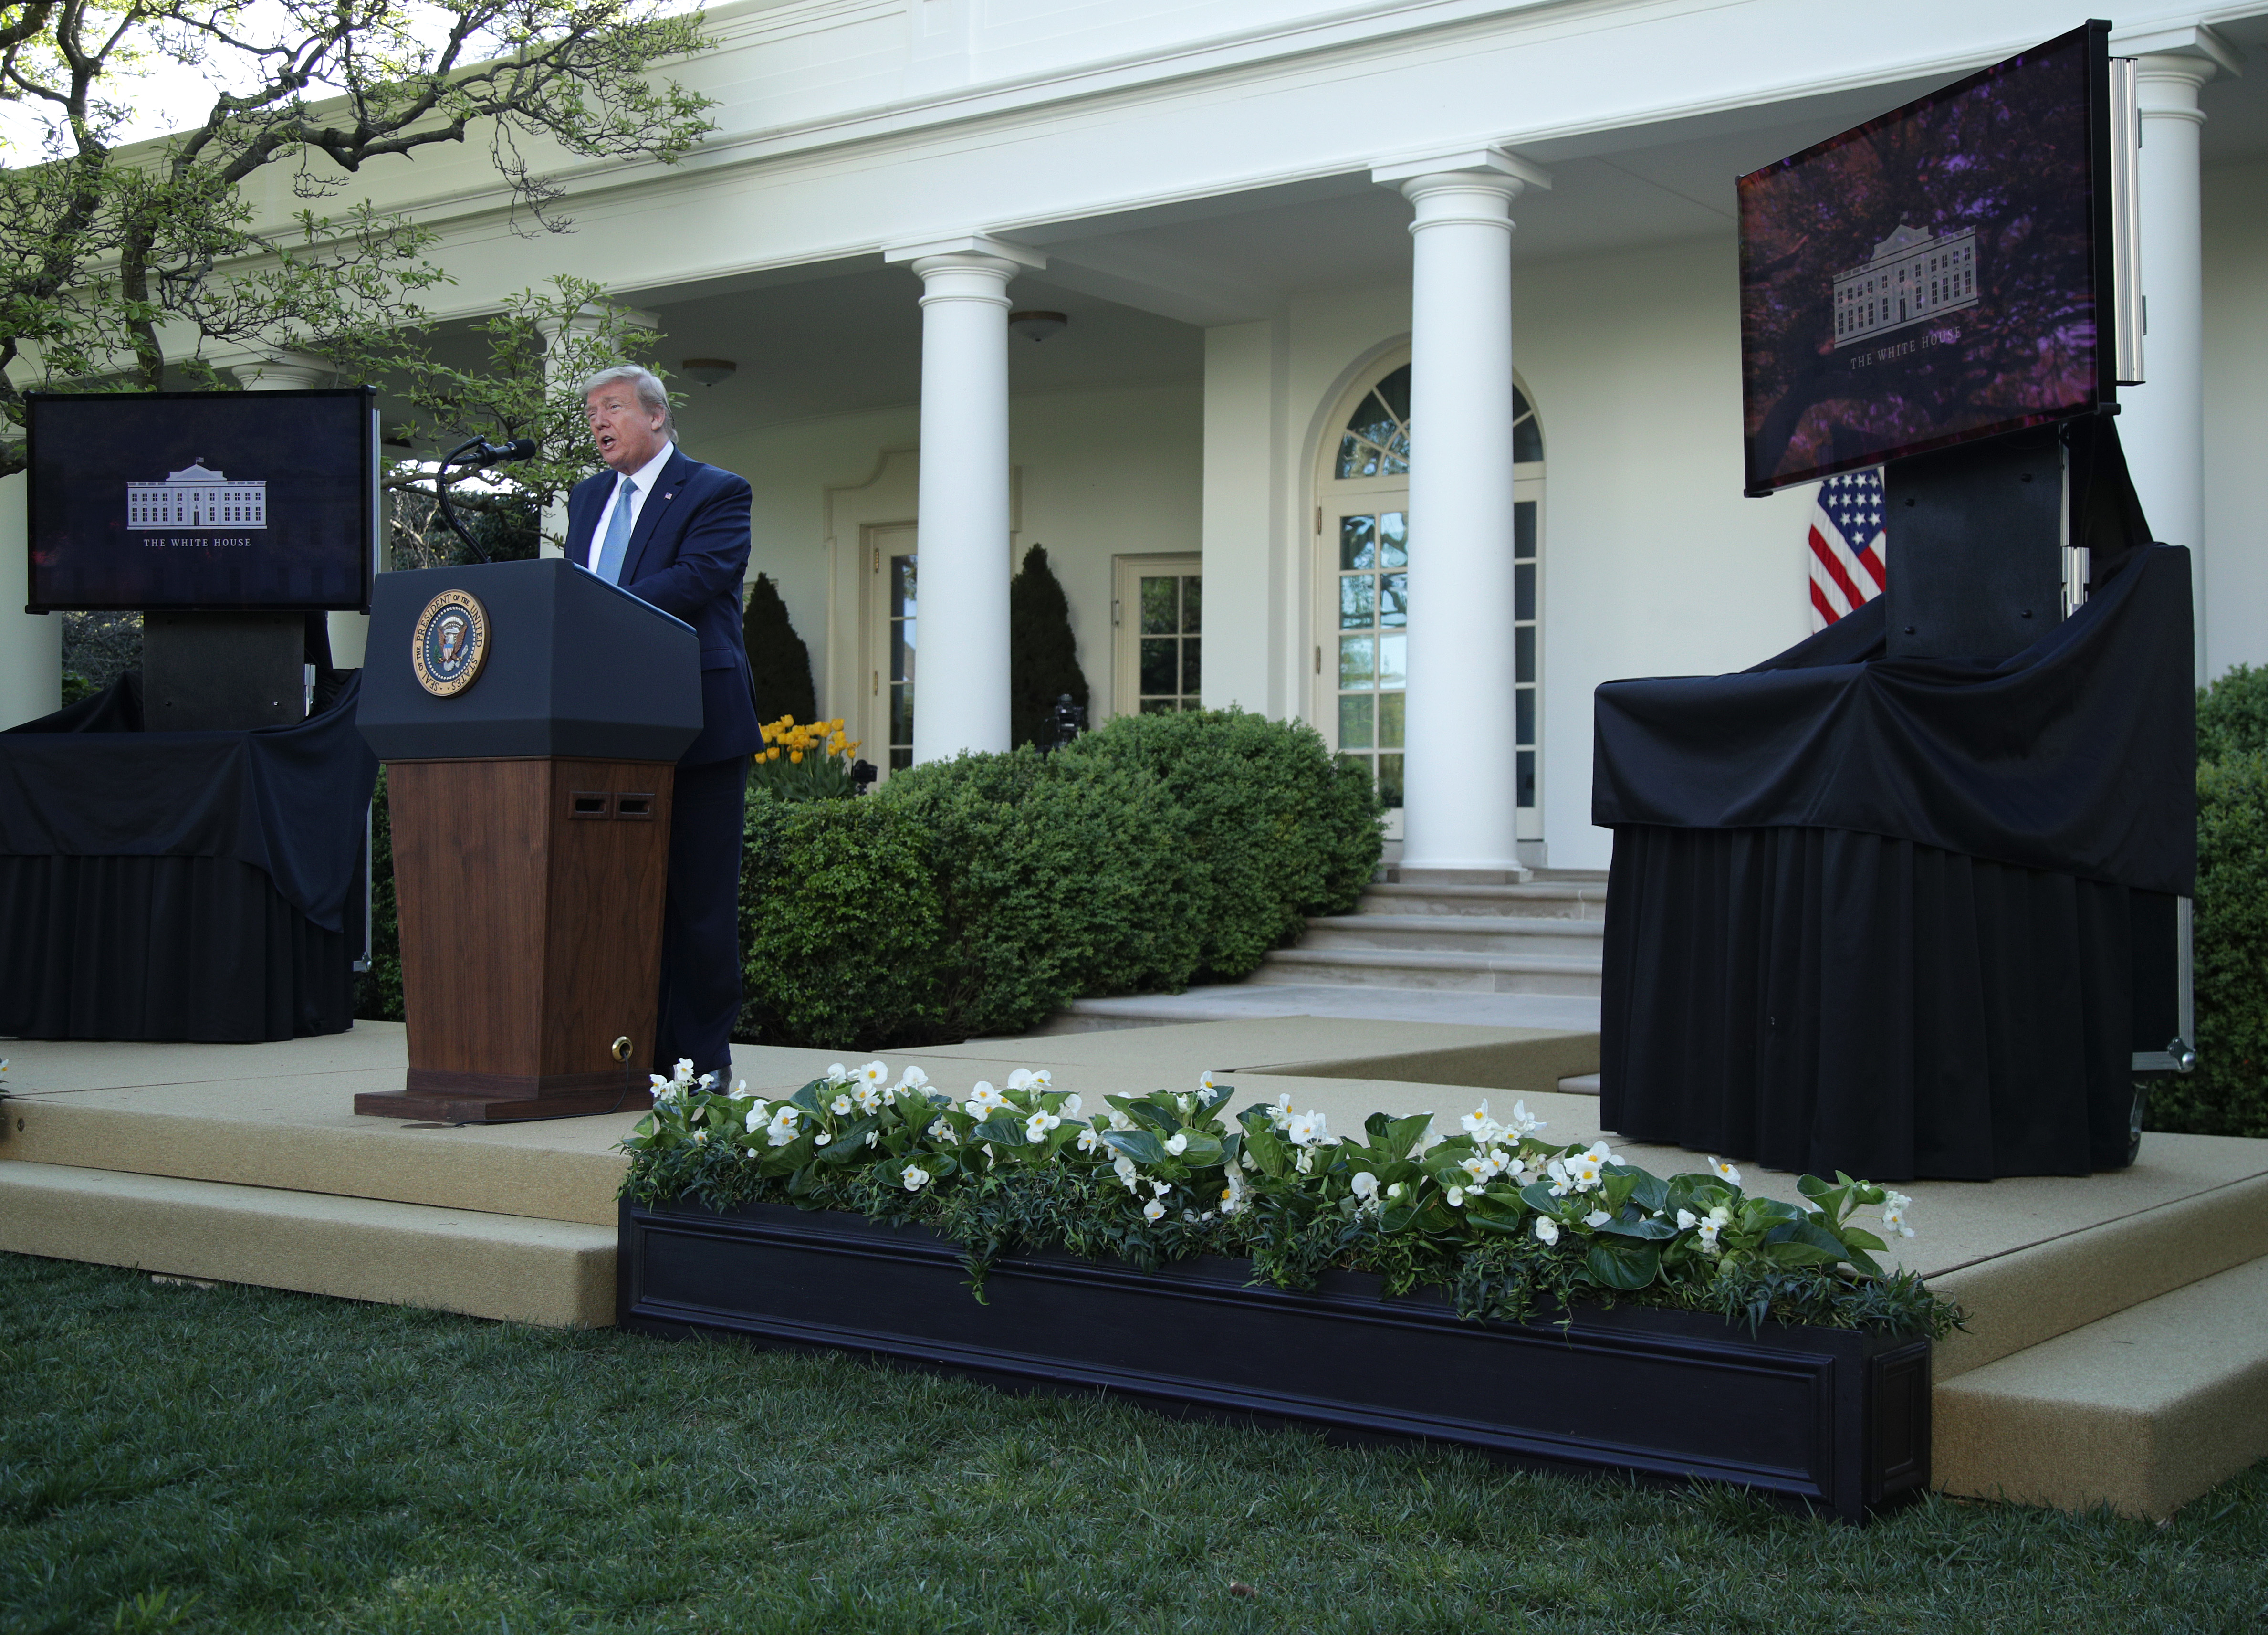 WASHINGTON, DC - APRIL 15: U.S. President Donald Trump speaks at the daily briefing of the White House Coronavirus Task Force in the Rose Garden at the White House April 15, 2020 in Washington, DC. The Treasury Department has ordered the IRS to put Trump's signature on the stimulus checks that are being sent to all Americans in response to the nation's shutdown due to the COVID-19 pandemic. (Photo by Alex Wong/Getty Images)